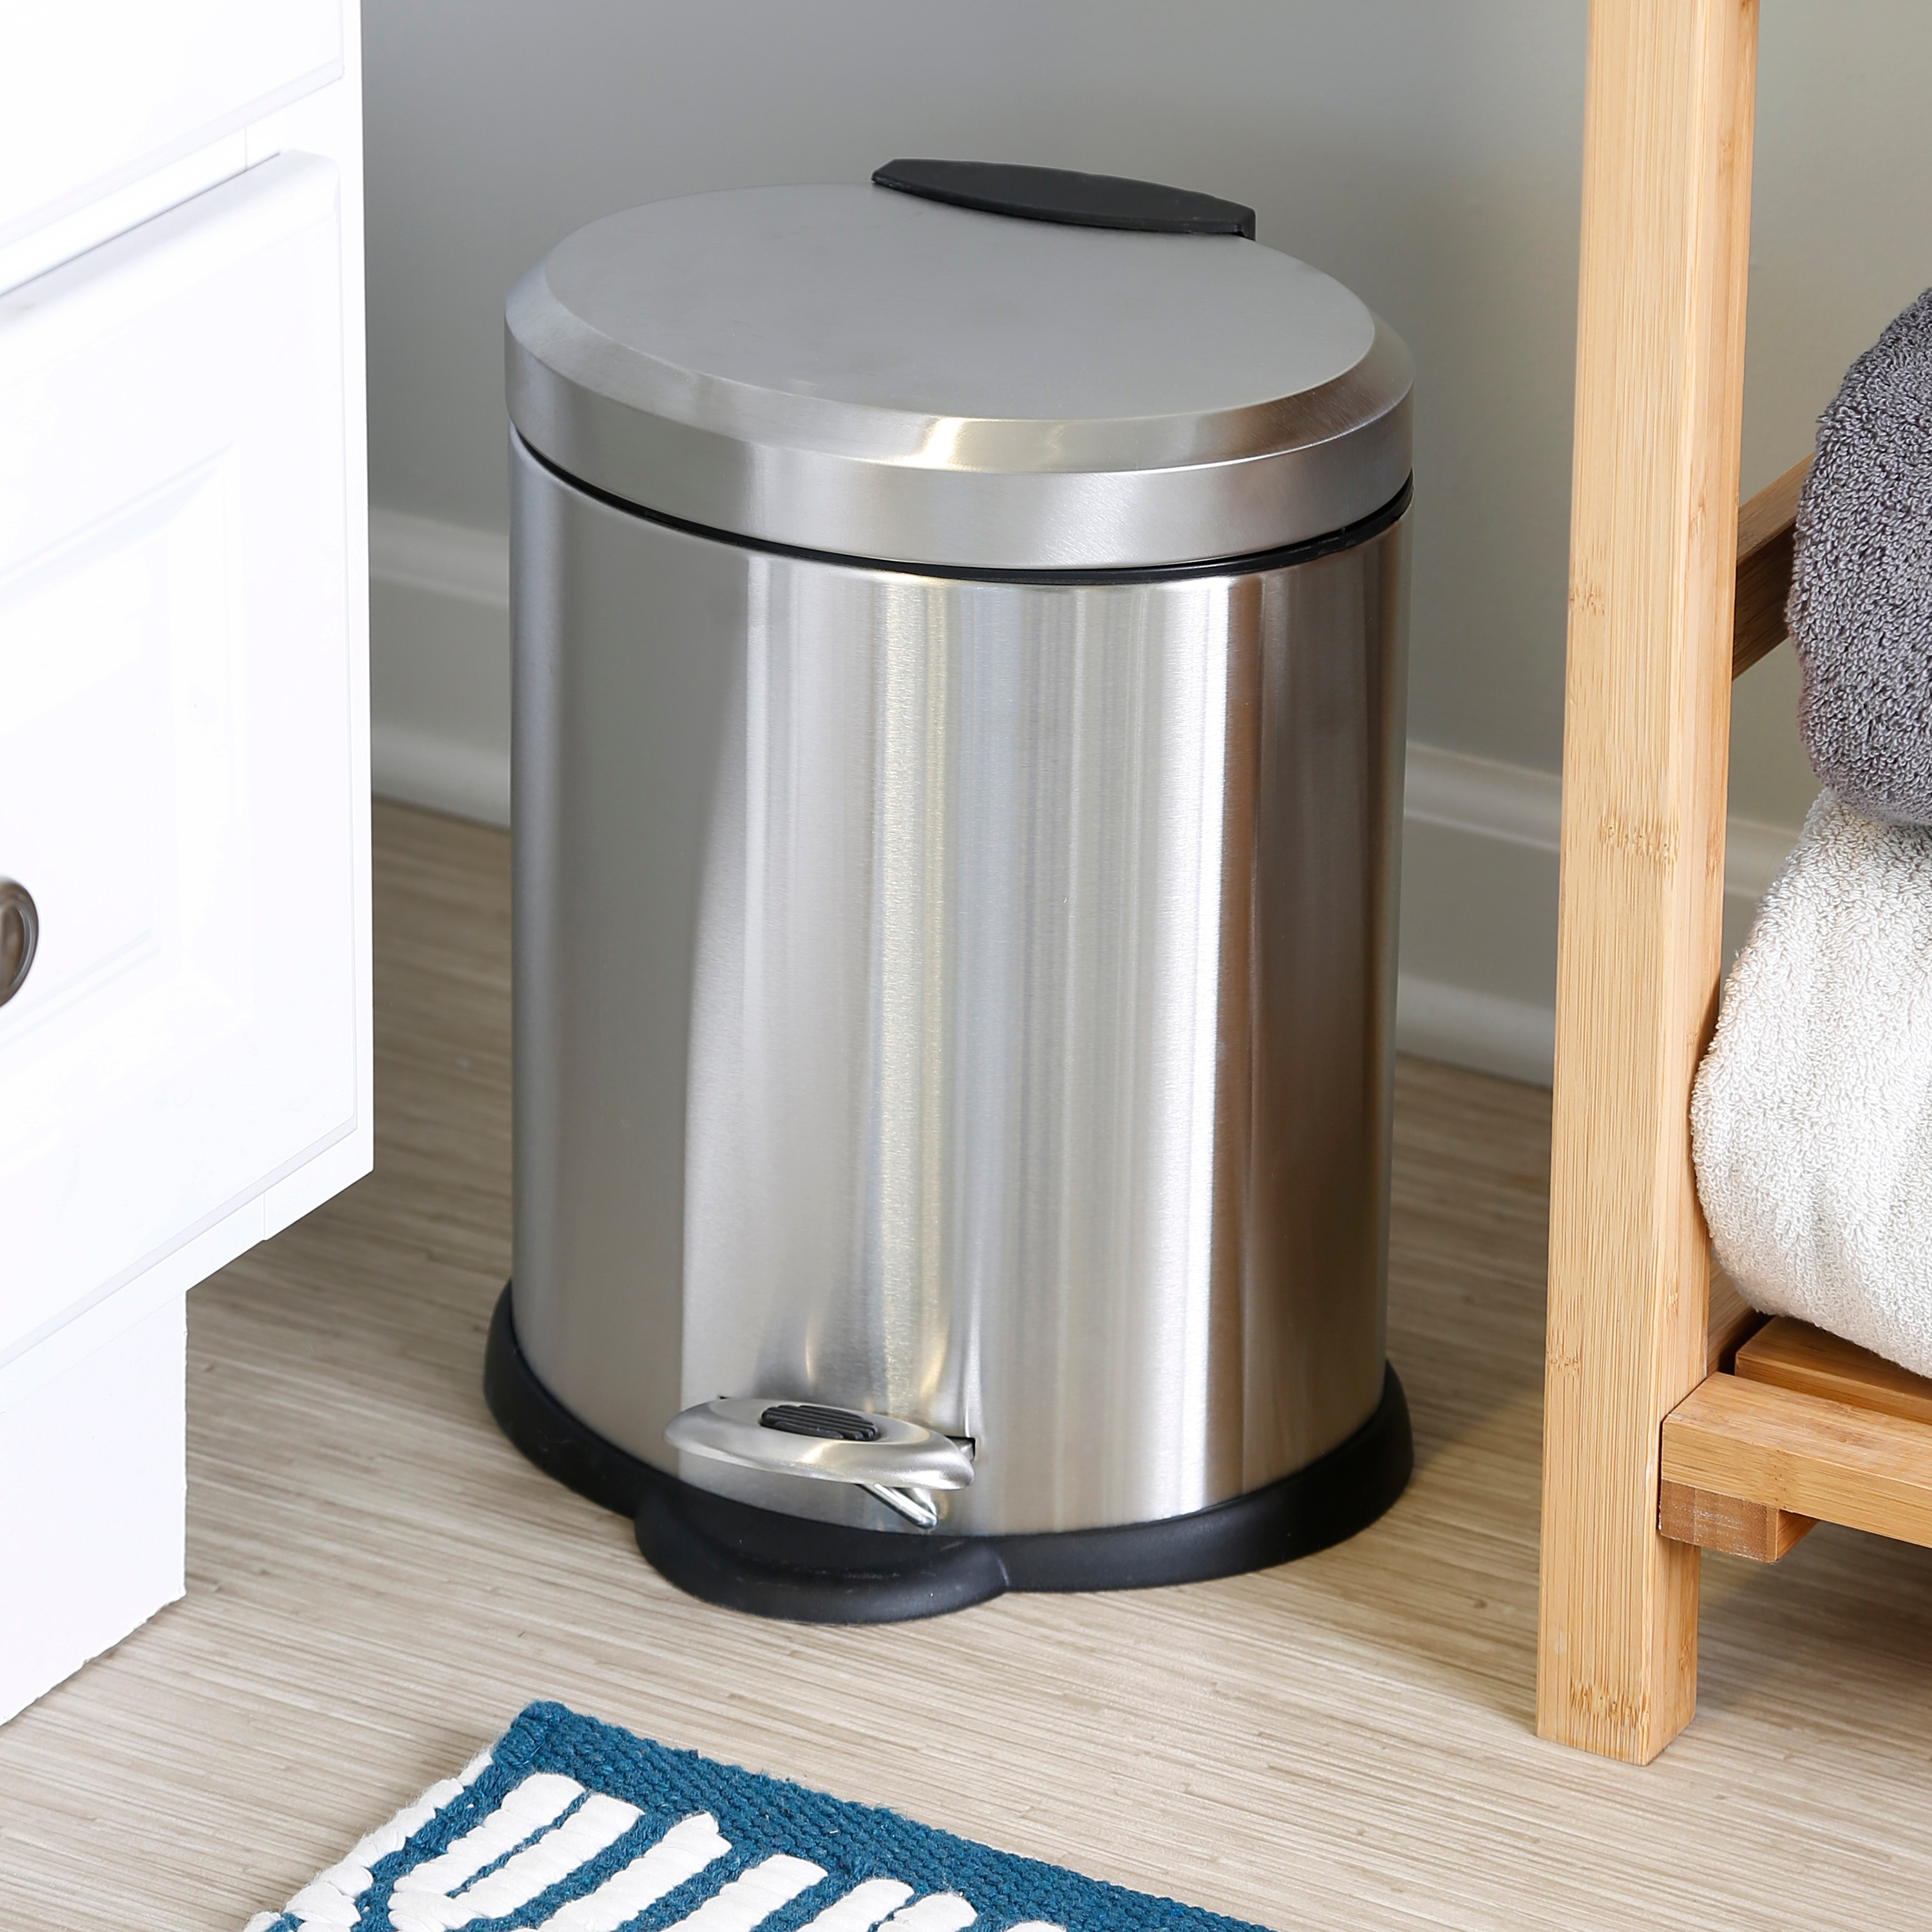 Silver Stainless Steel Oval Waste Can 10.5 Gallon Home Bathroom Garbage Basket